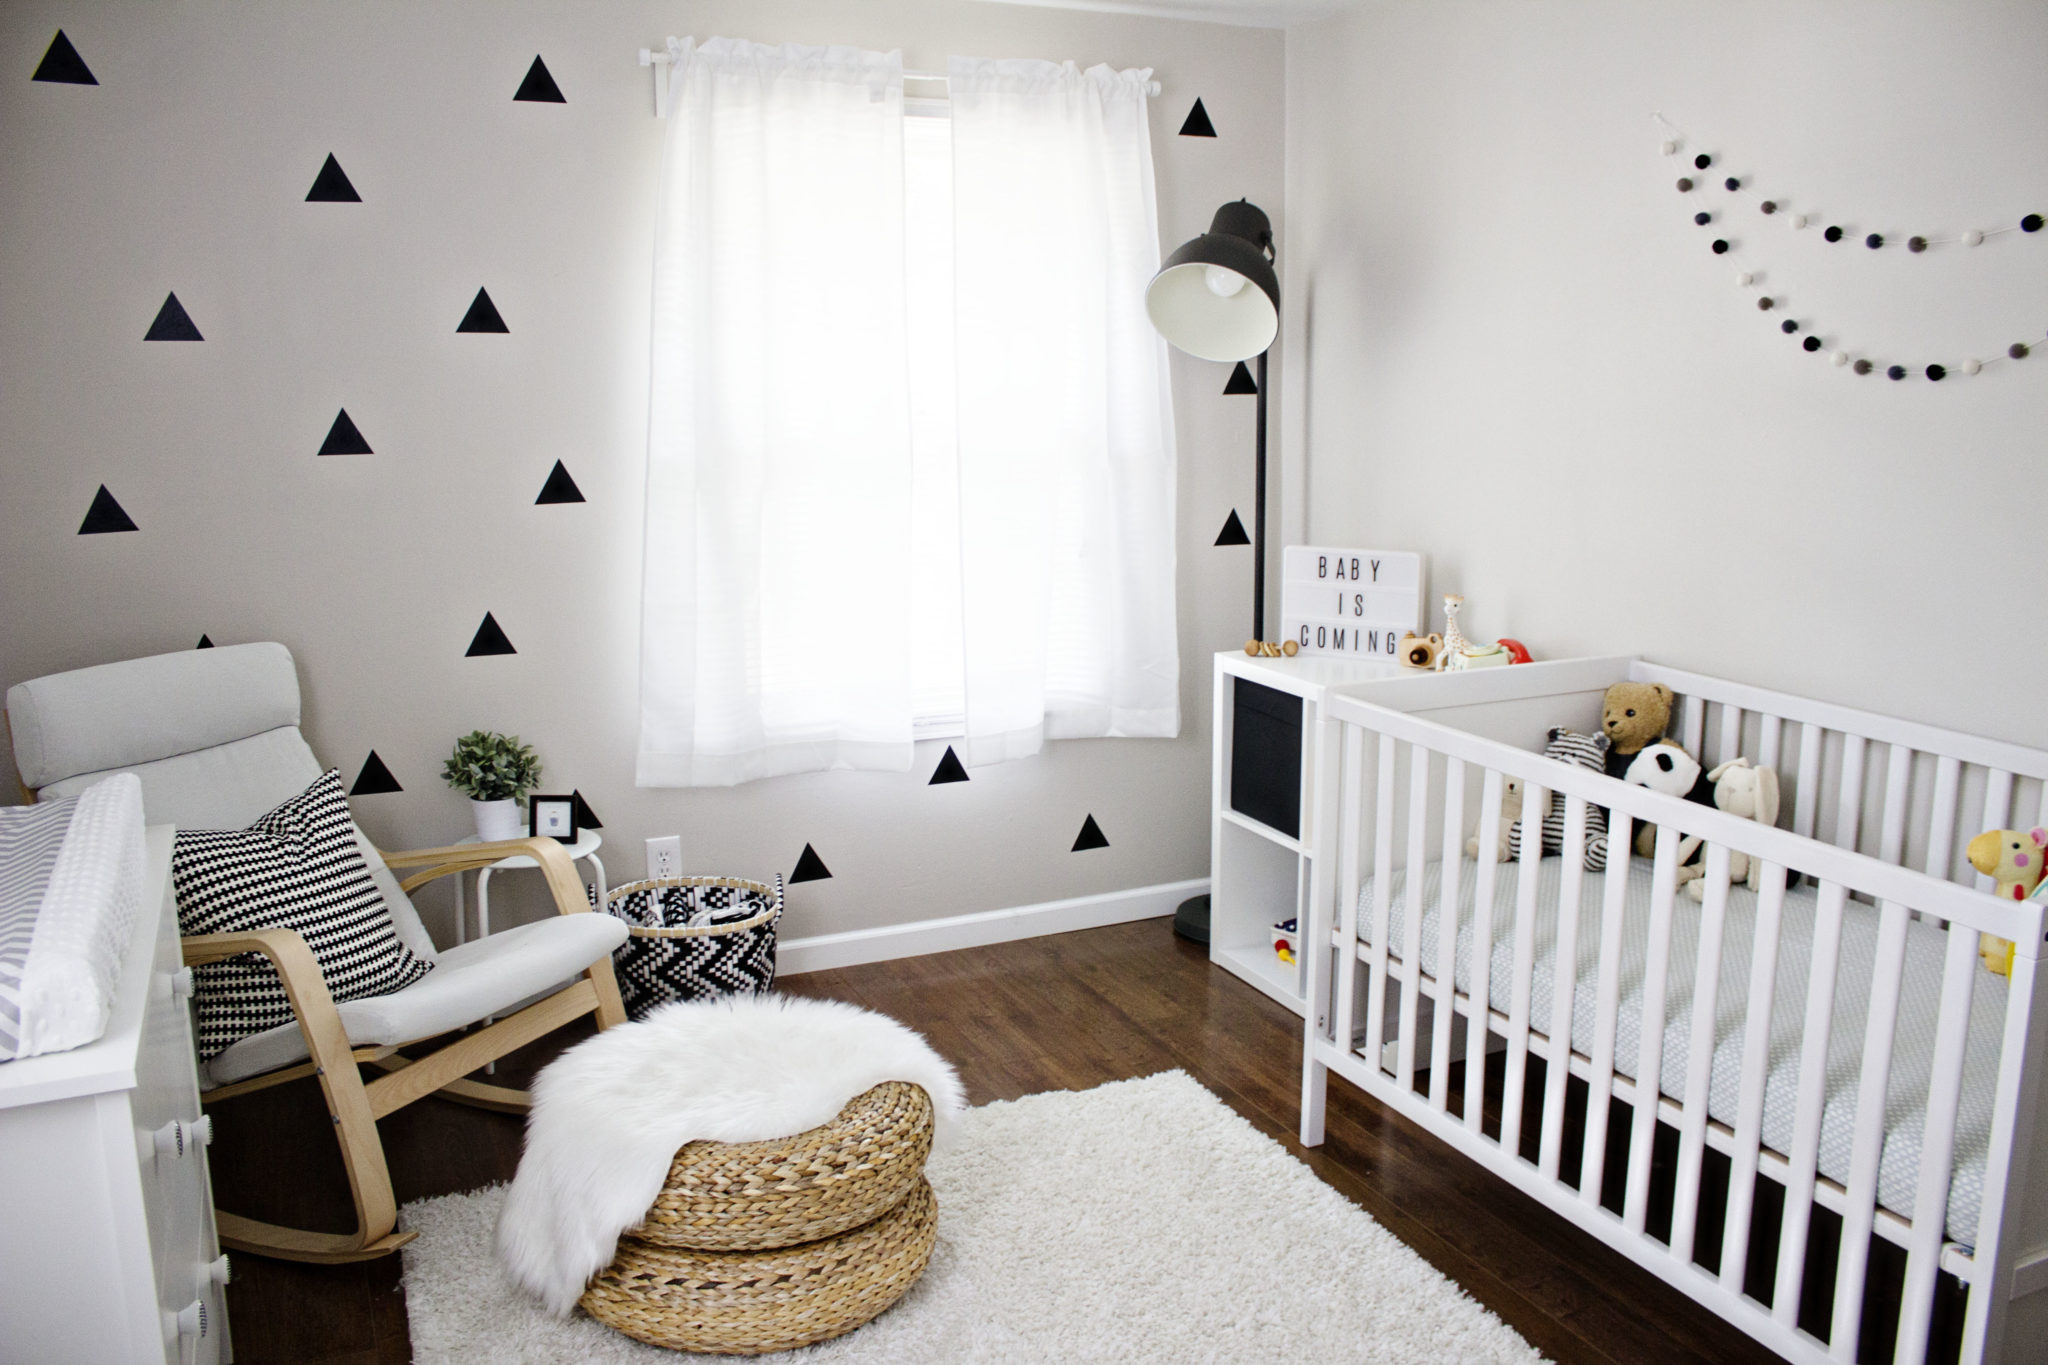 Bright white nursery with selected black decor pieces